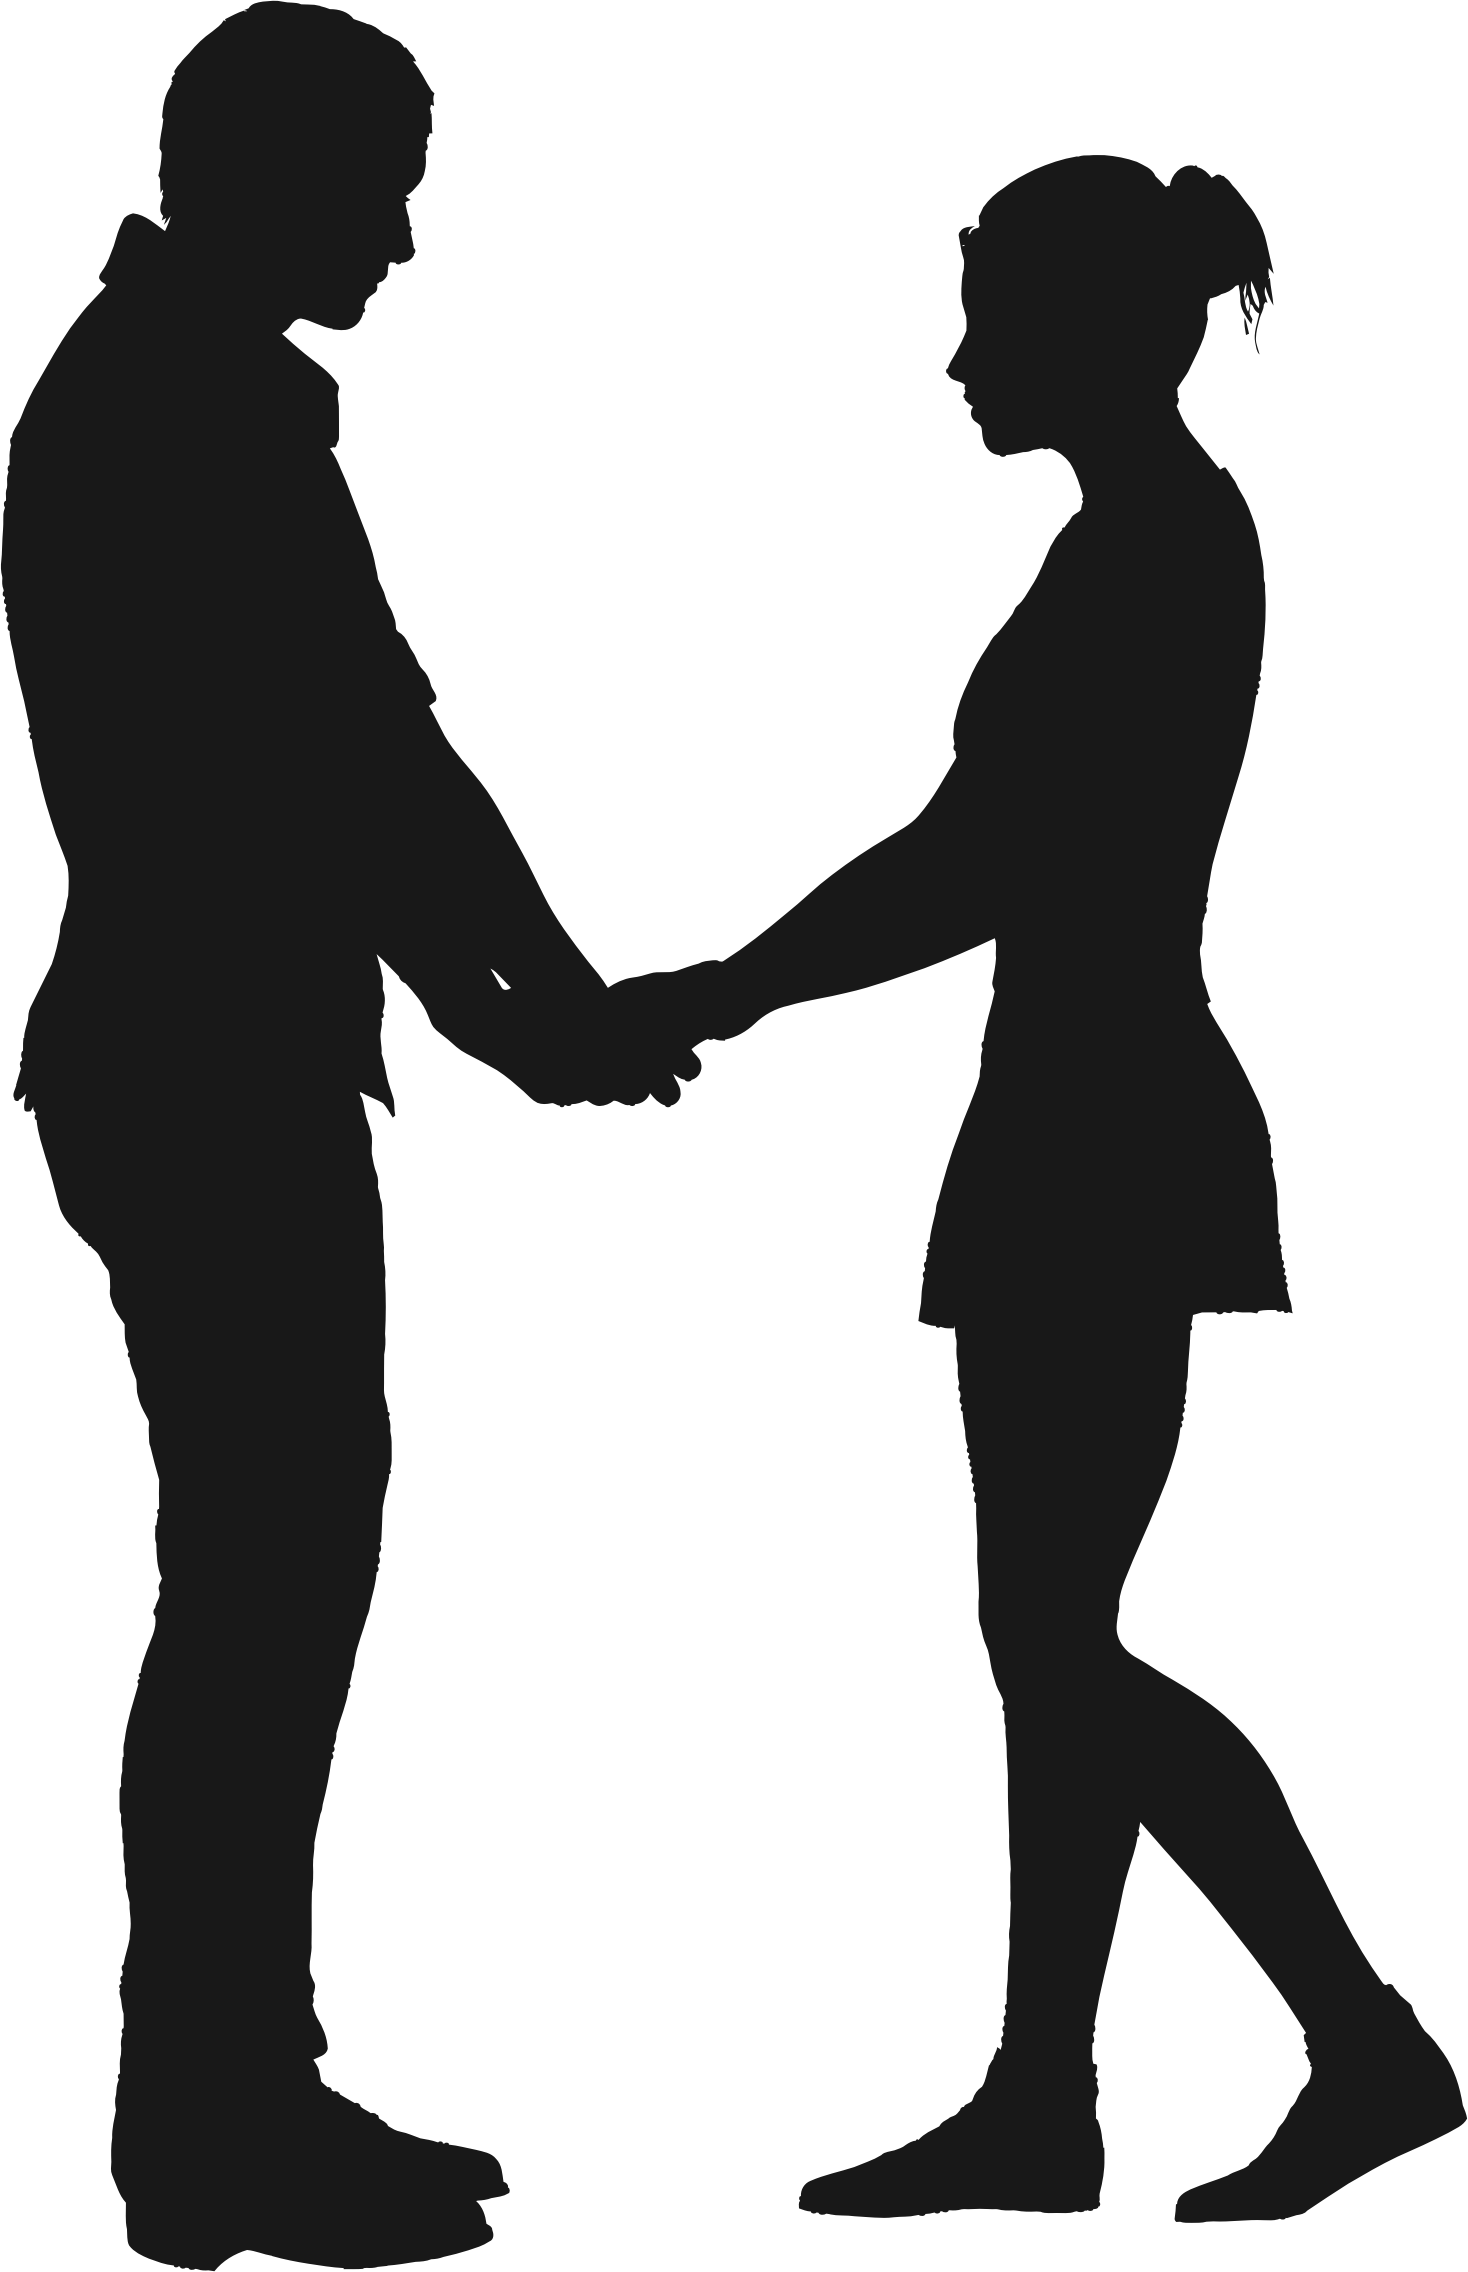 Couple silhouette holding hands png. Clipart big image